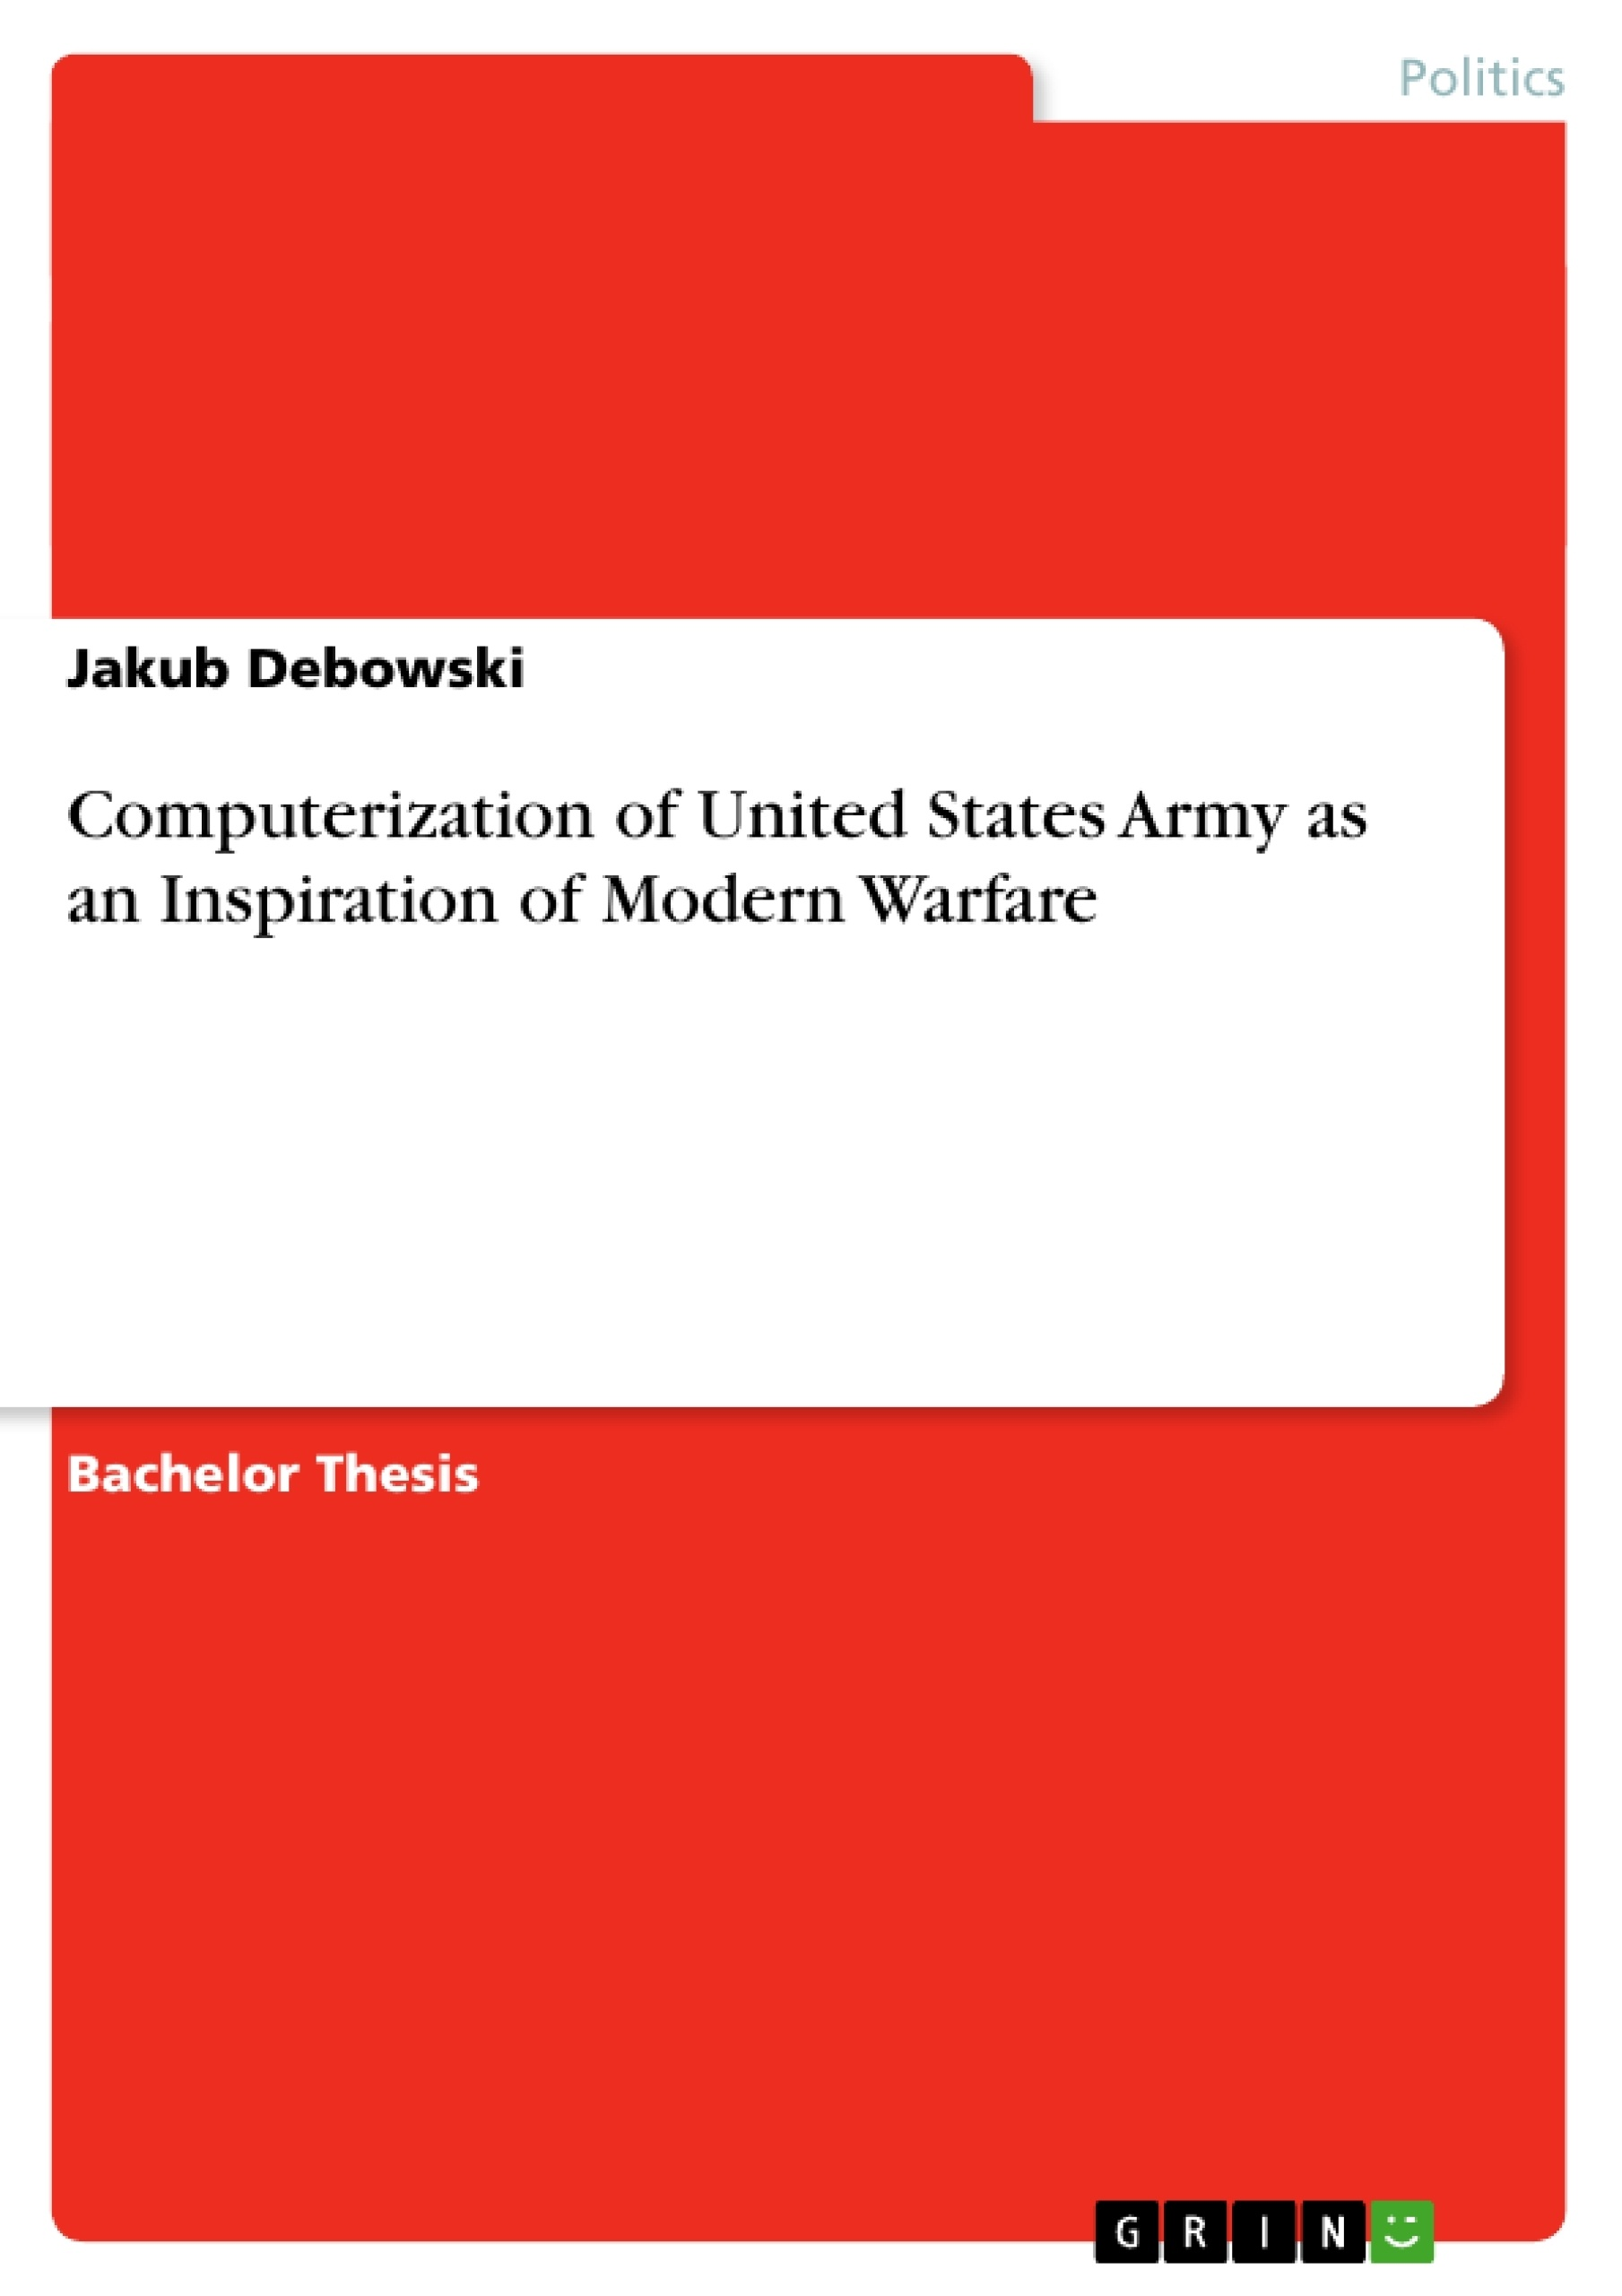 Title: Computerization of United States Army as an Inspiration of Modern Warfare